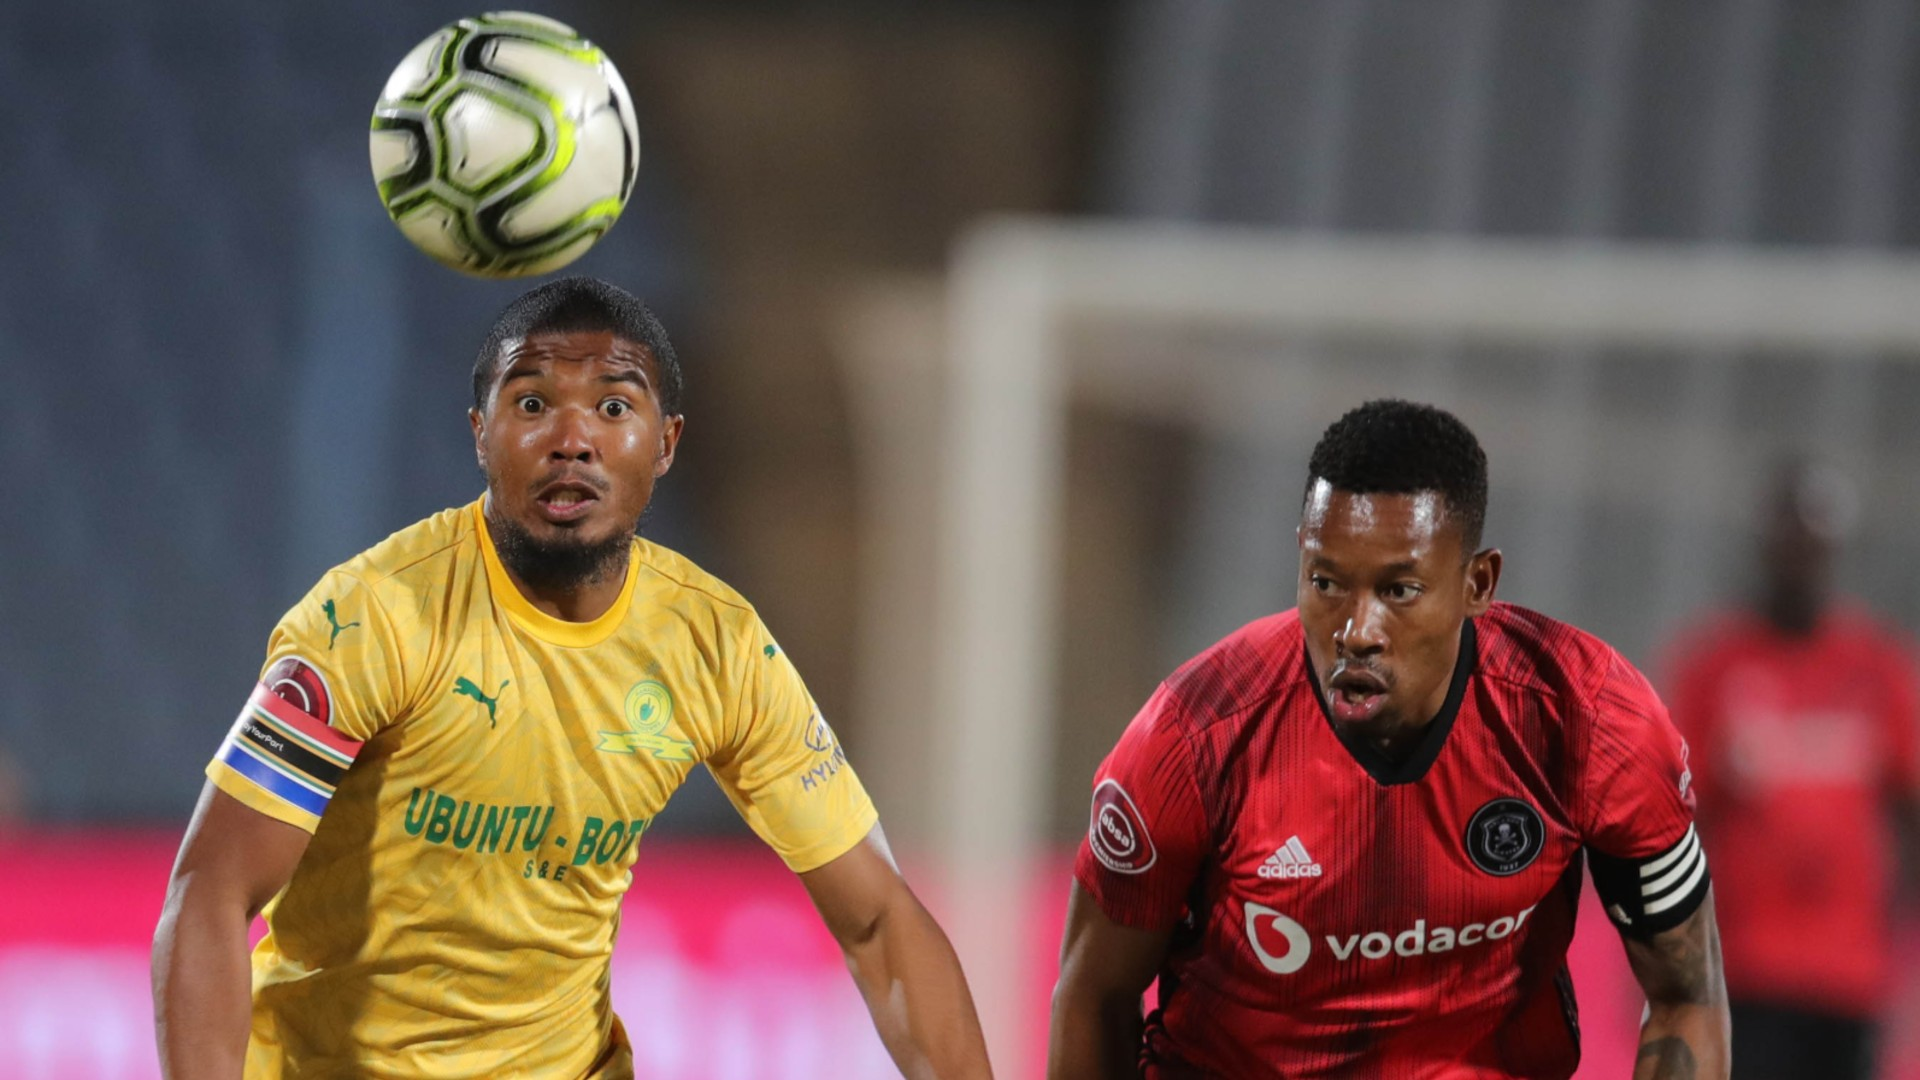 Ex-Orlando Pirates striker Mothibi backs Bucs to beat Mamelodi Sundowns